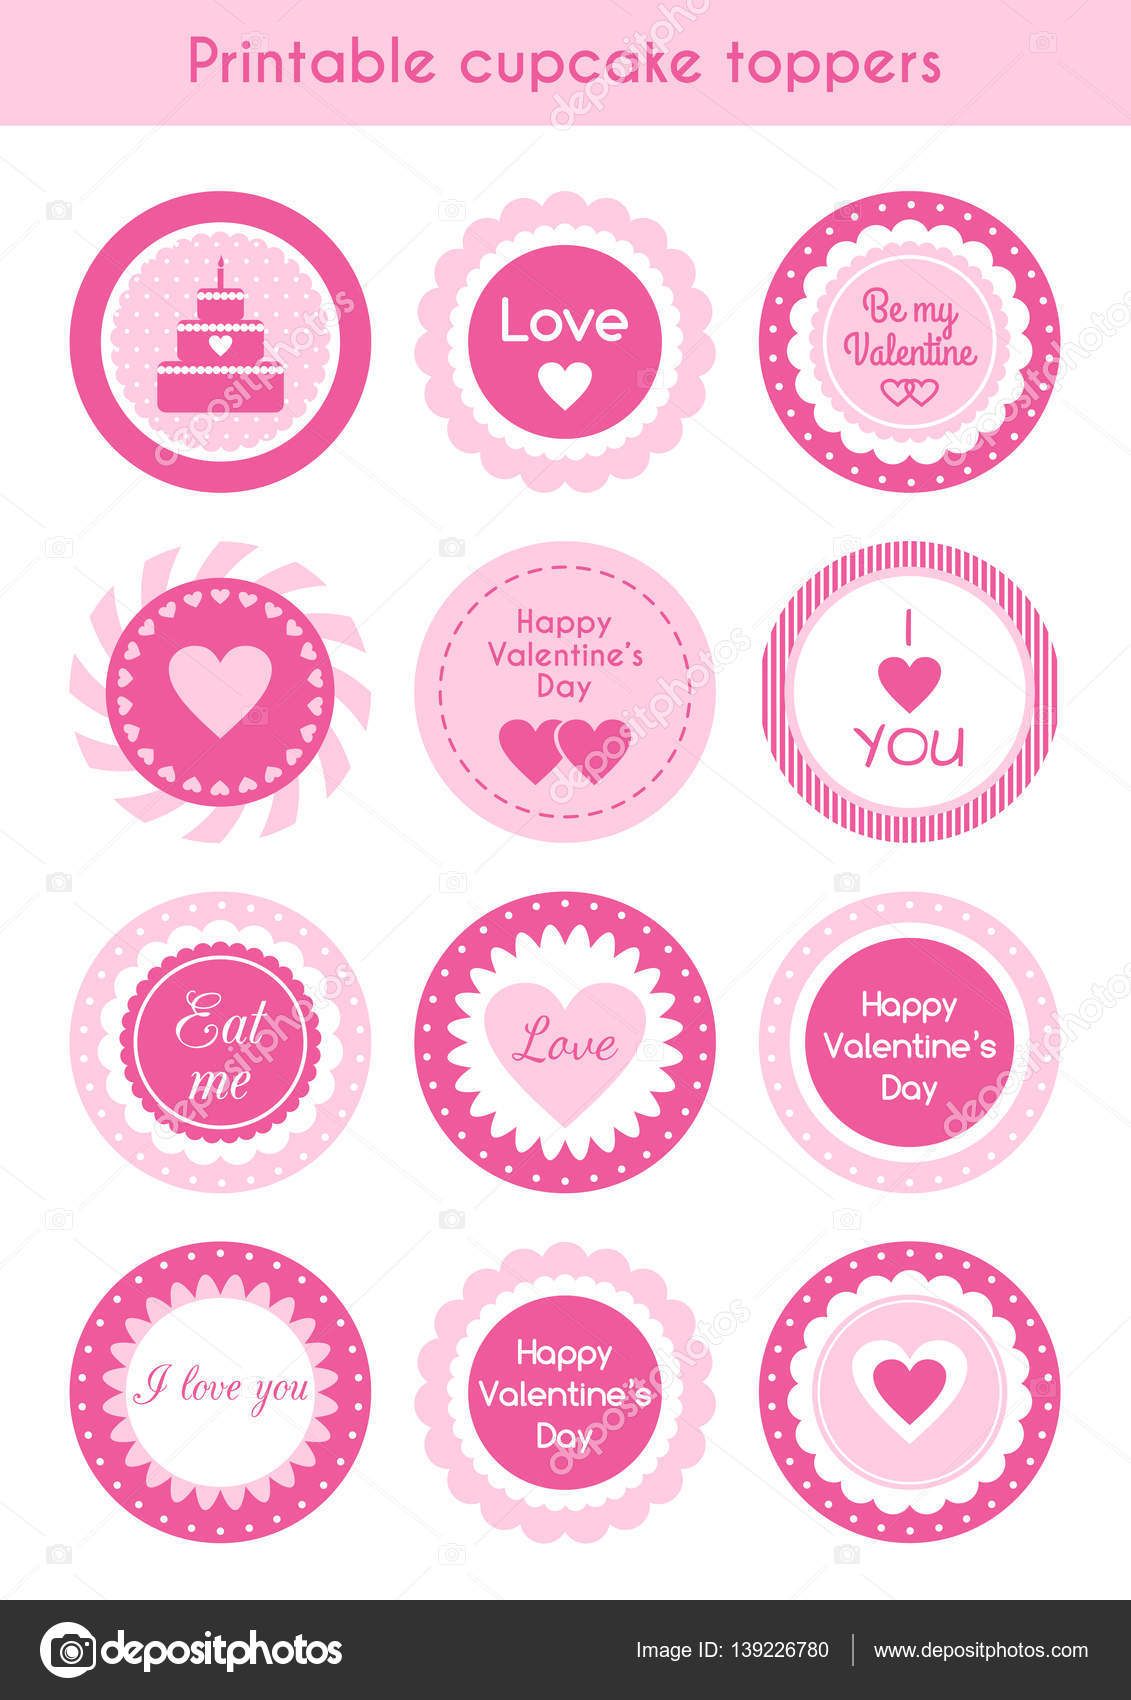 picture about Cupcake Printable called Fastened of printable cupcake toppers Valentines working day Inventory